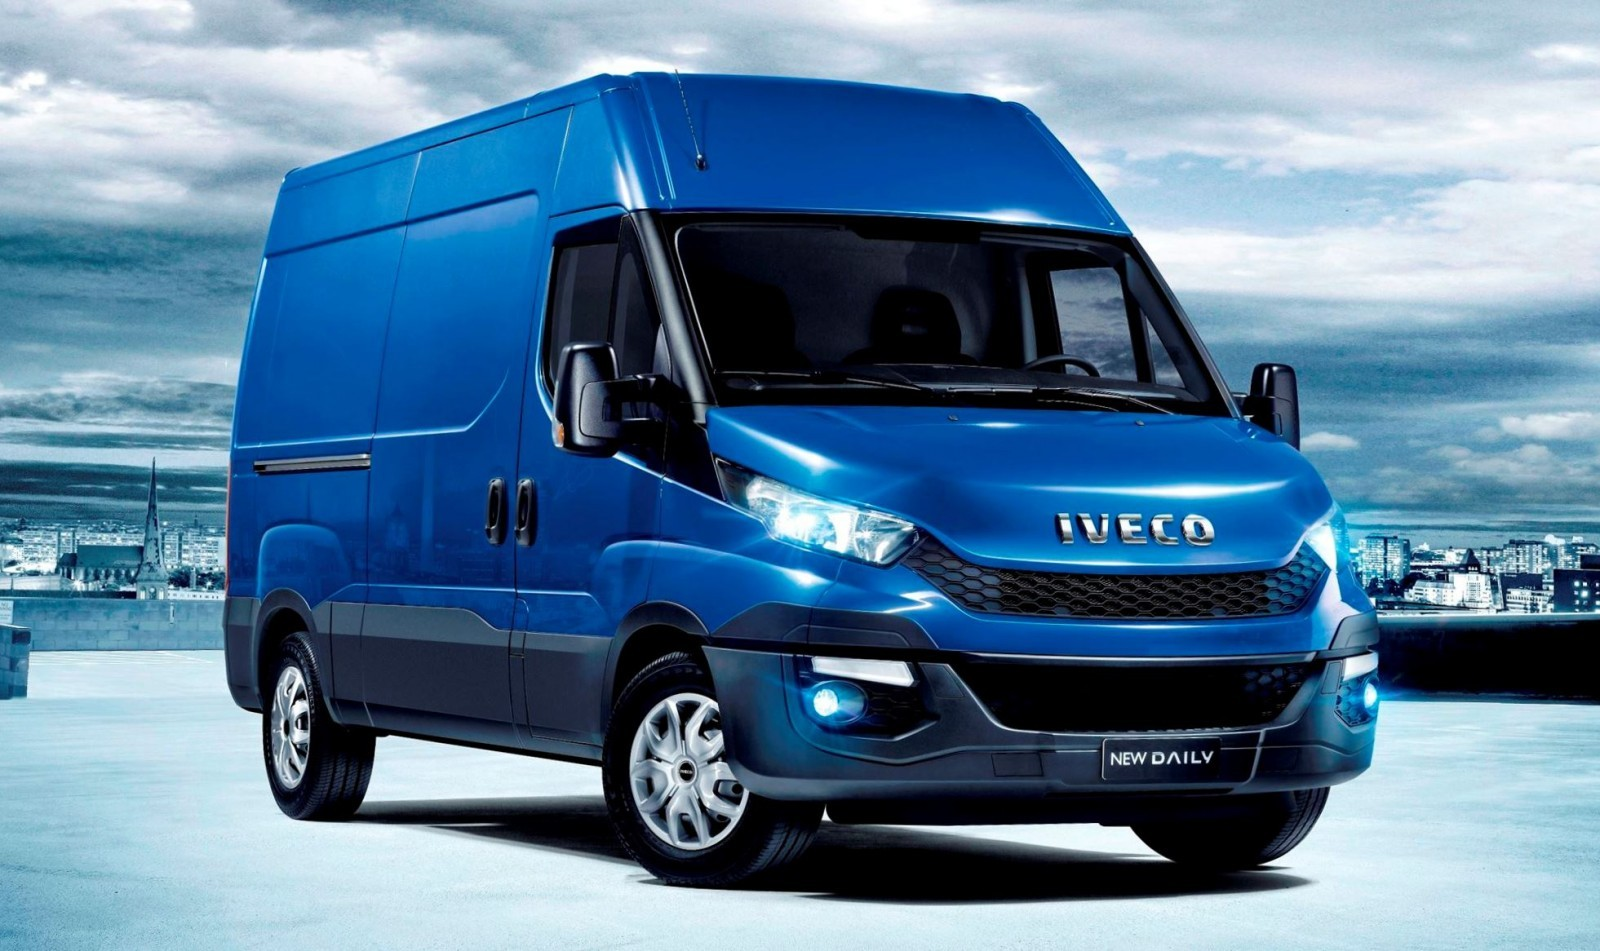 iveco-daily-van-berlin-hr